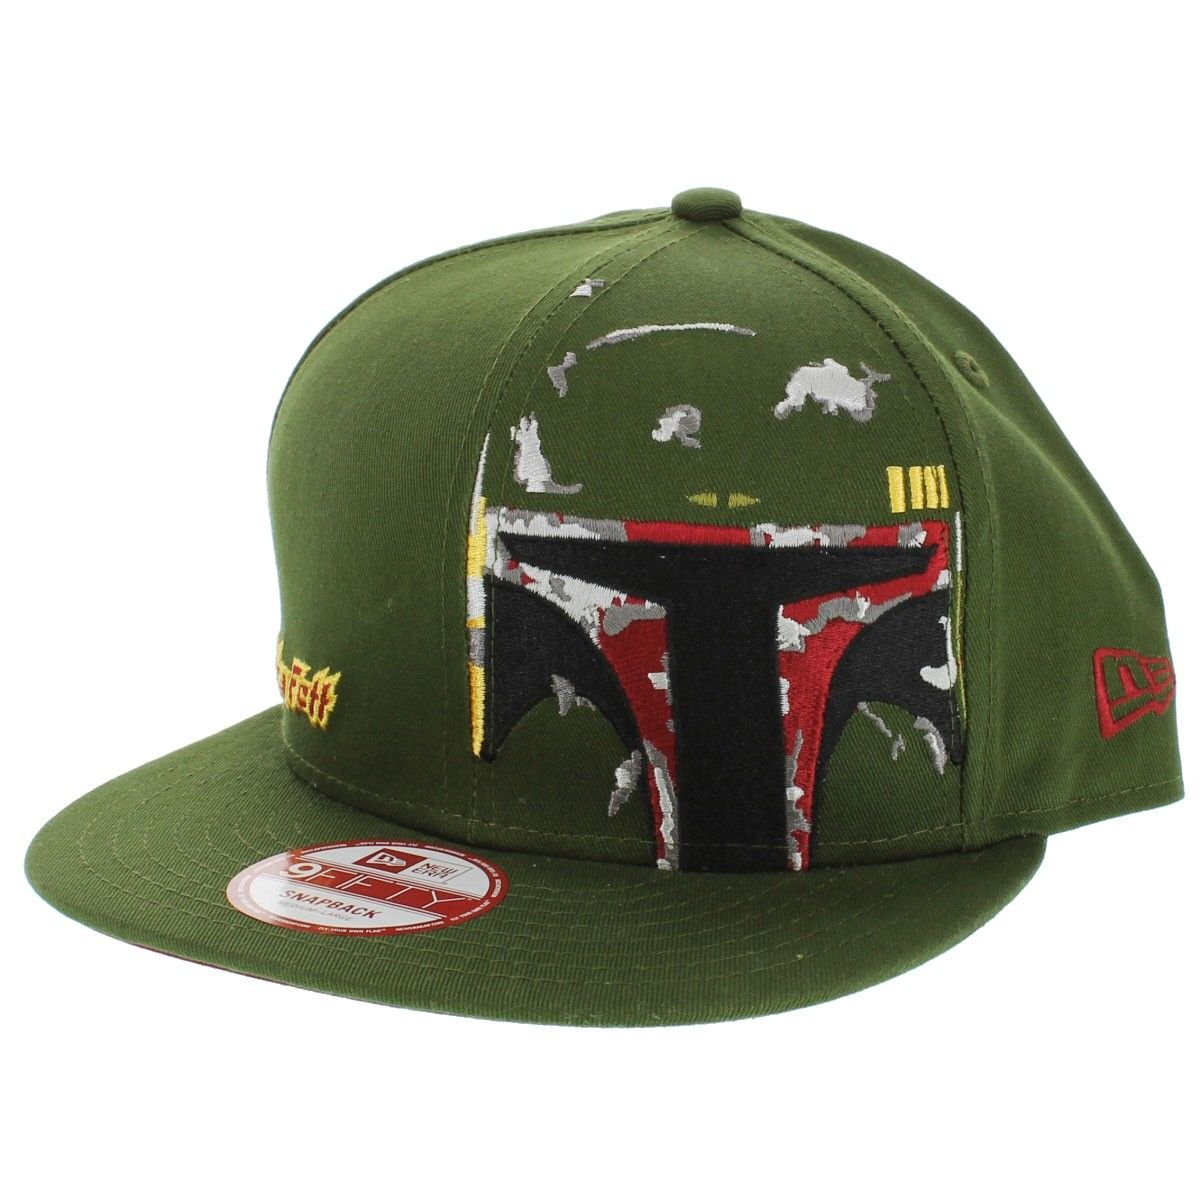 Star Wars Boba Fett Adjustable Hat